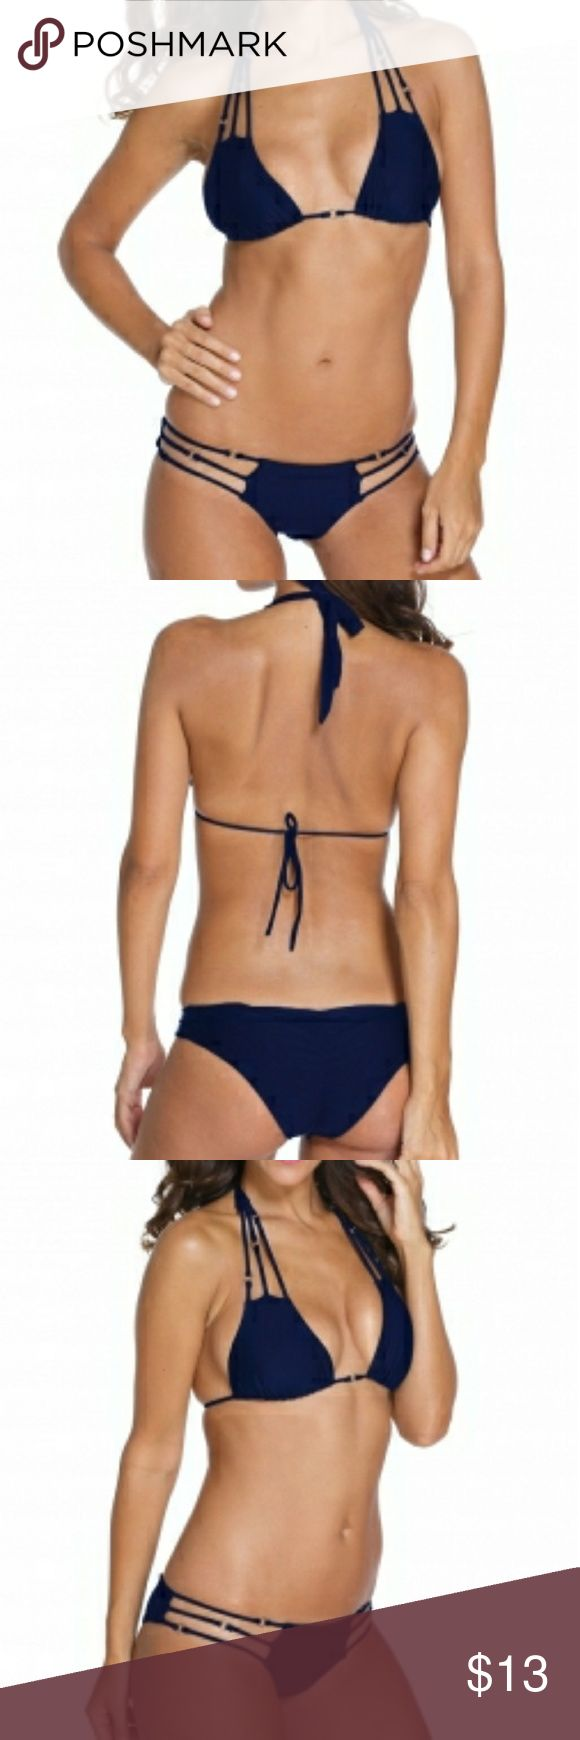 """Navy Stylish silver Ring Detail Strappy Bikini Be blazing hot in this little black triangle top! Not your basic triangle with trio spaghetti, silver ring detail, thick neck ties and our signature """"B"""" cord ends. Sliding design with removable bra paddings but no underwire. Barely there skimpy bottom with silver ring and spaghetti detail. Back shirring and low rise. Swim Bikinis"""